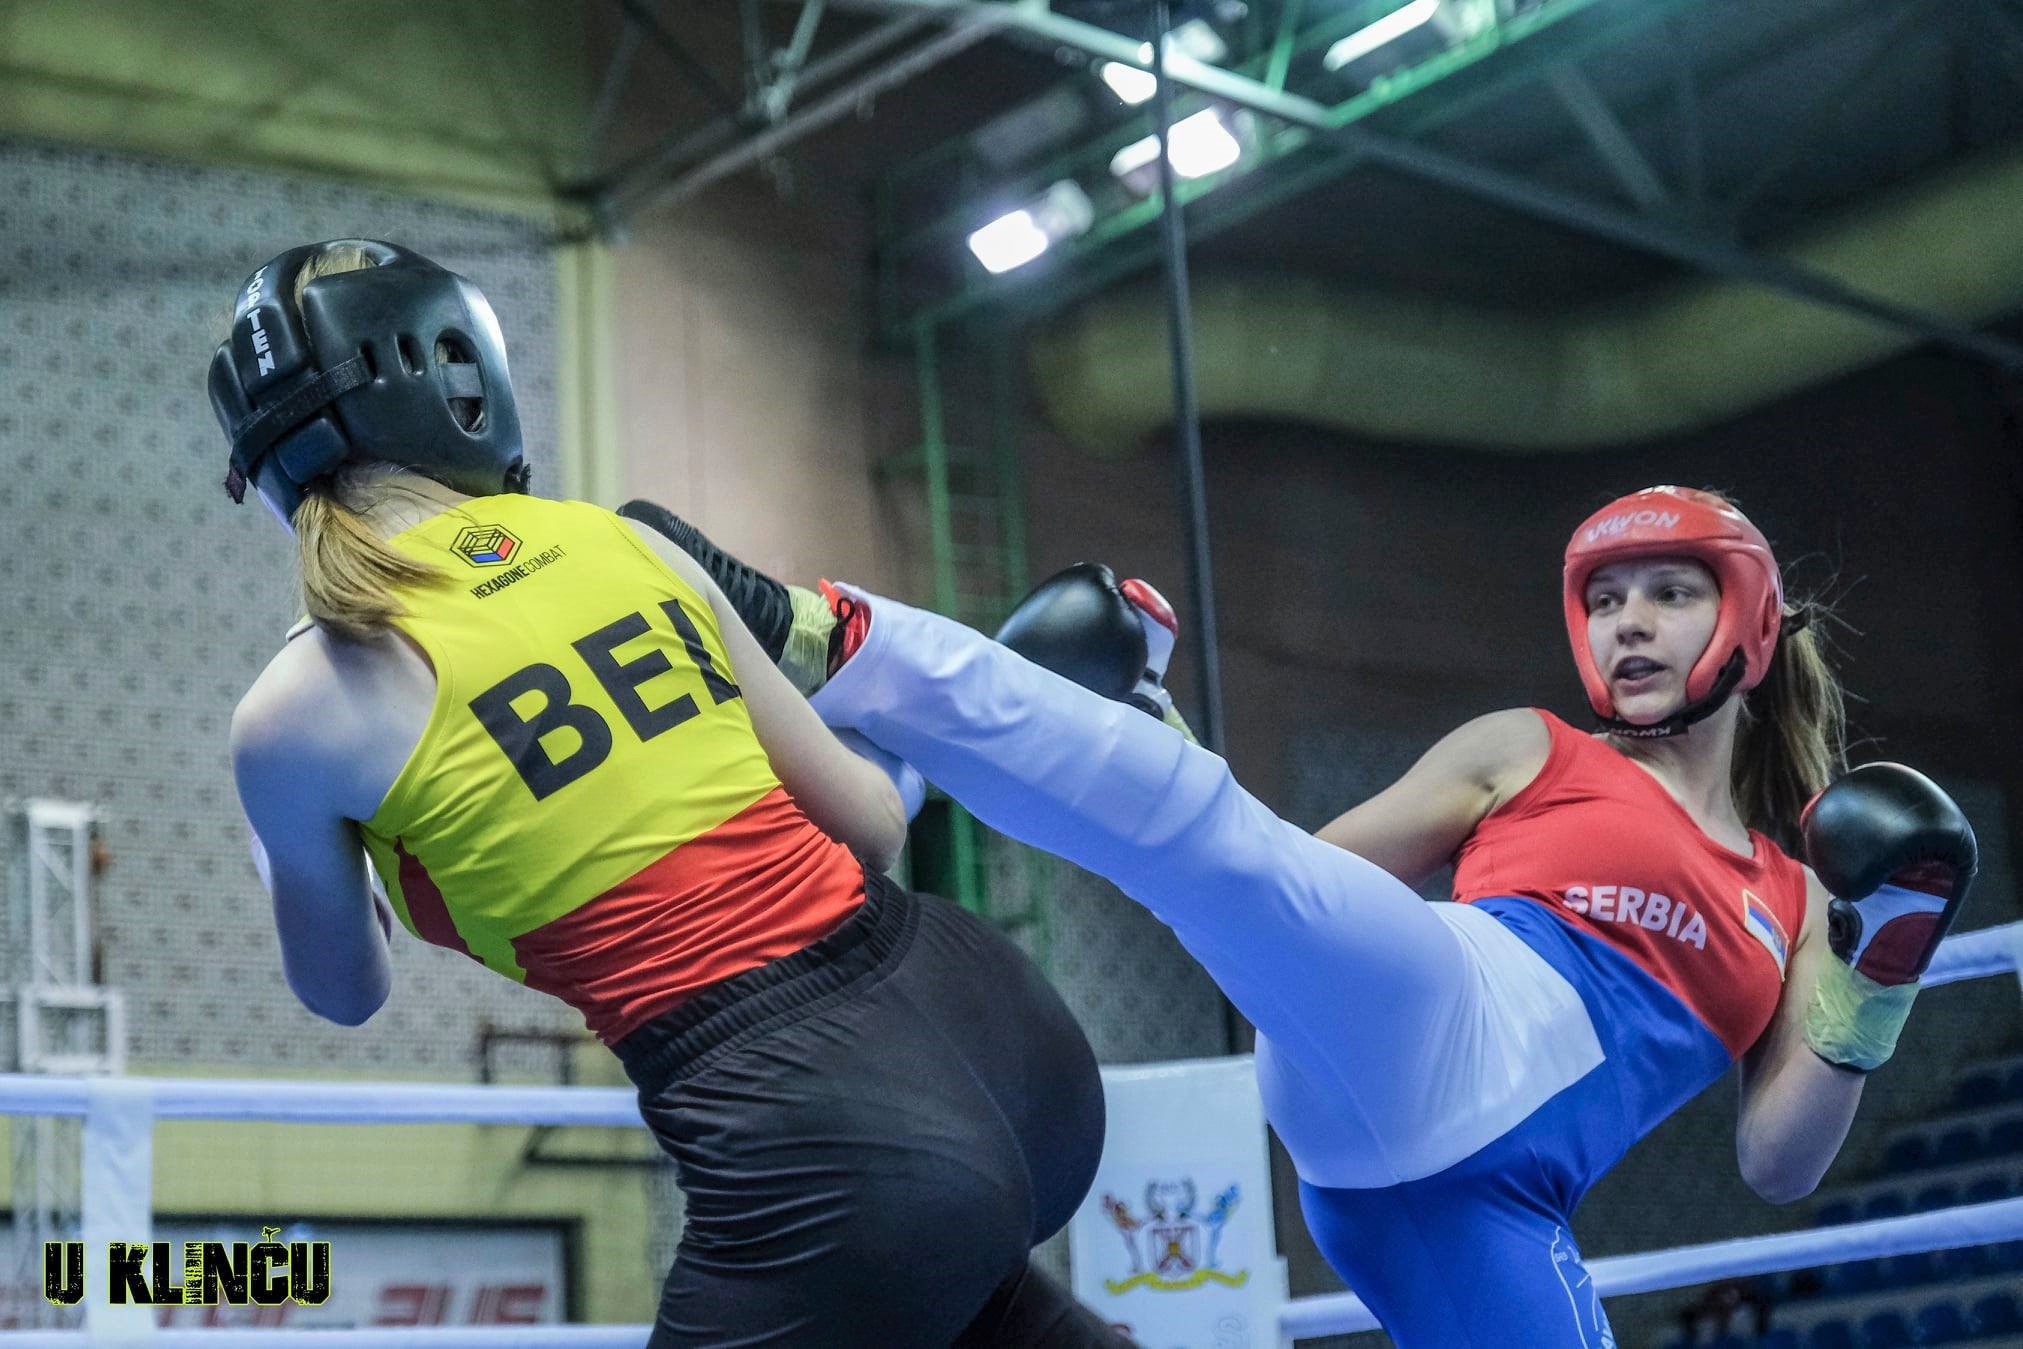 Savate returns with World Youth Championships and World Youth Cup in assaut in Serbia